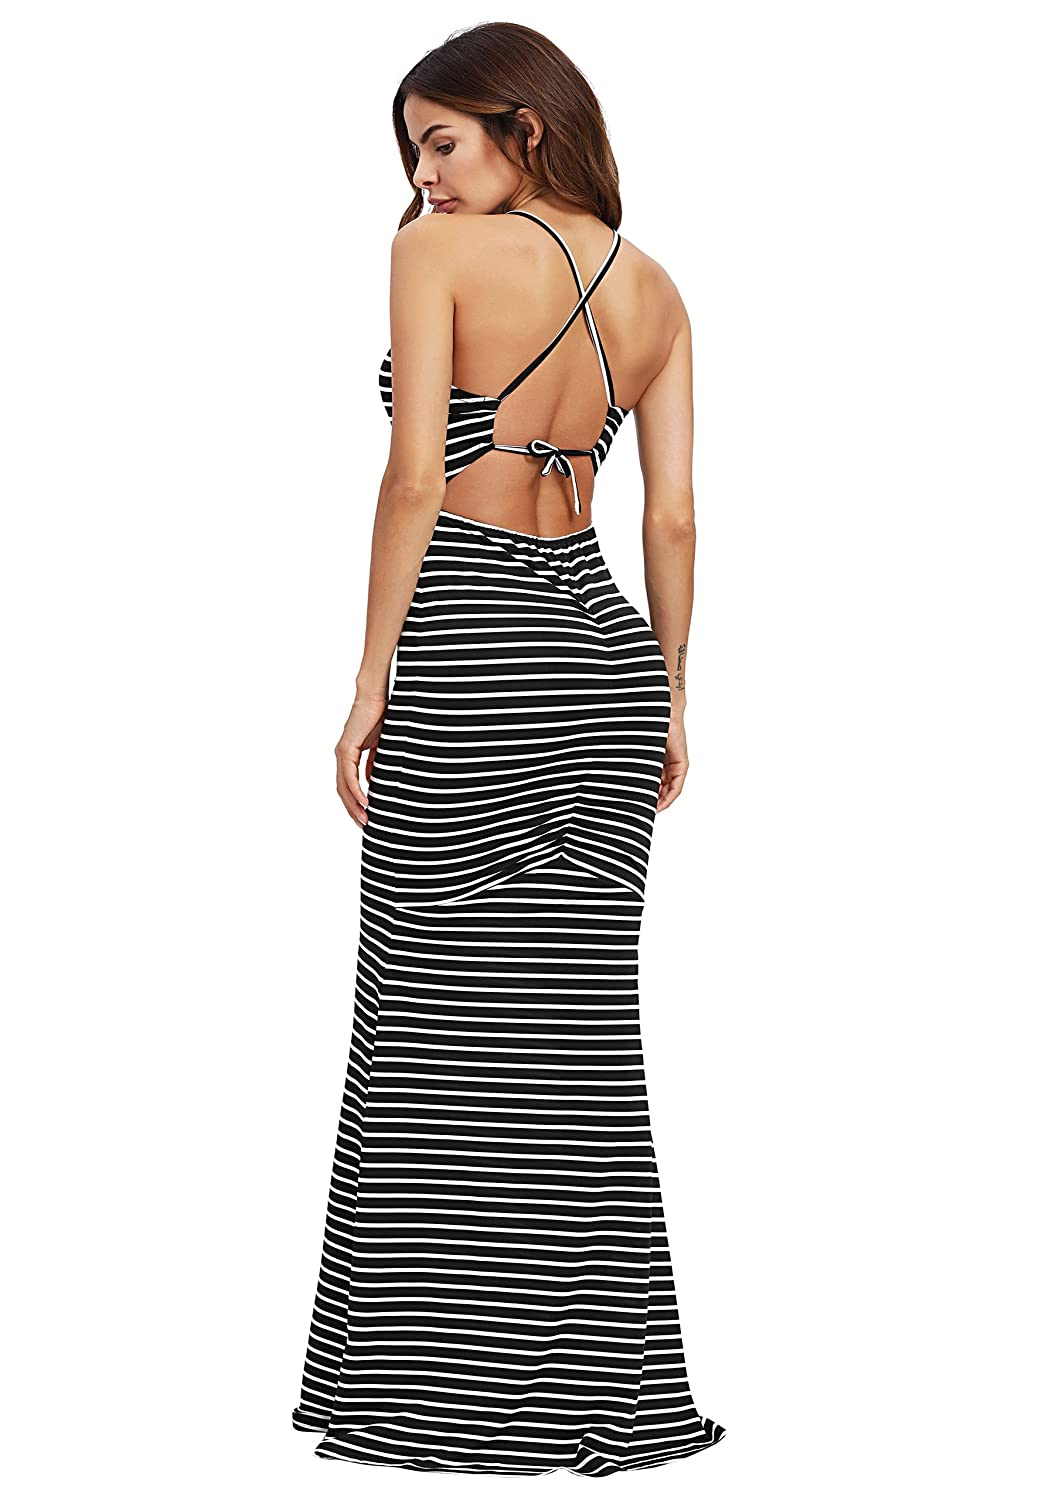 6cb10626a5b0 SheIn Women s Strappy Backless Summer Evening Party Maxi Dress at Amazon  Women s Clothing store